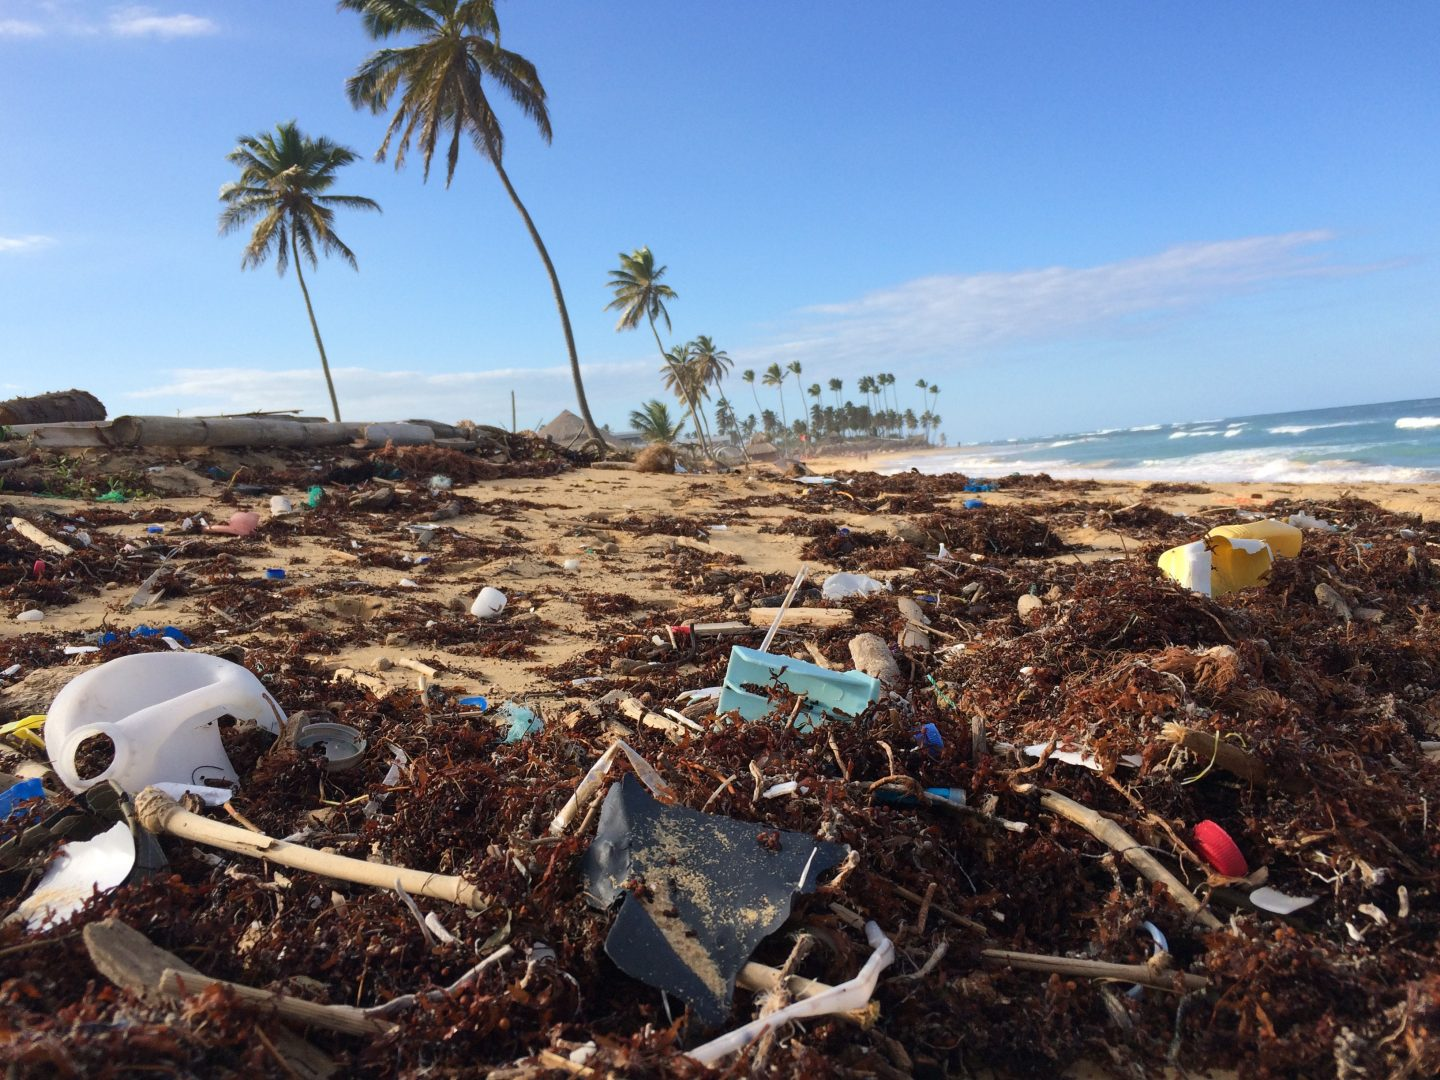 5 Easy Ways To Reduce Plastic While Traveling